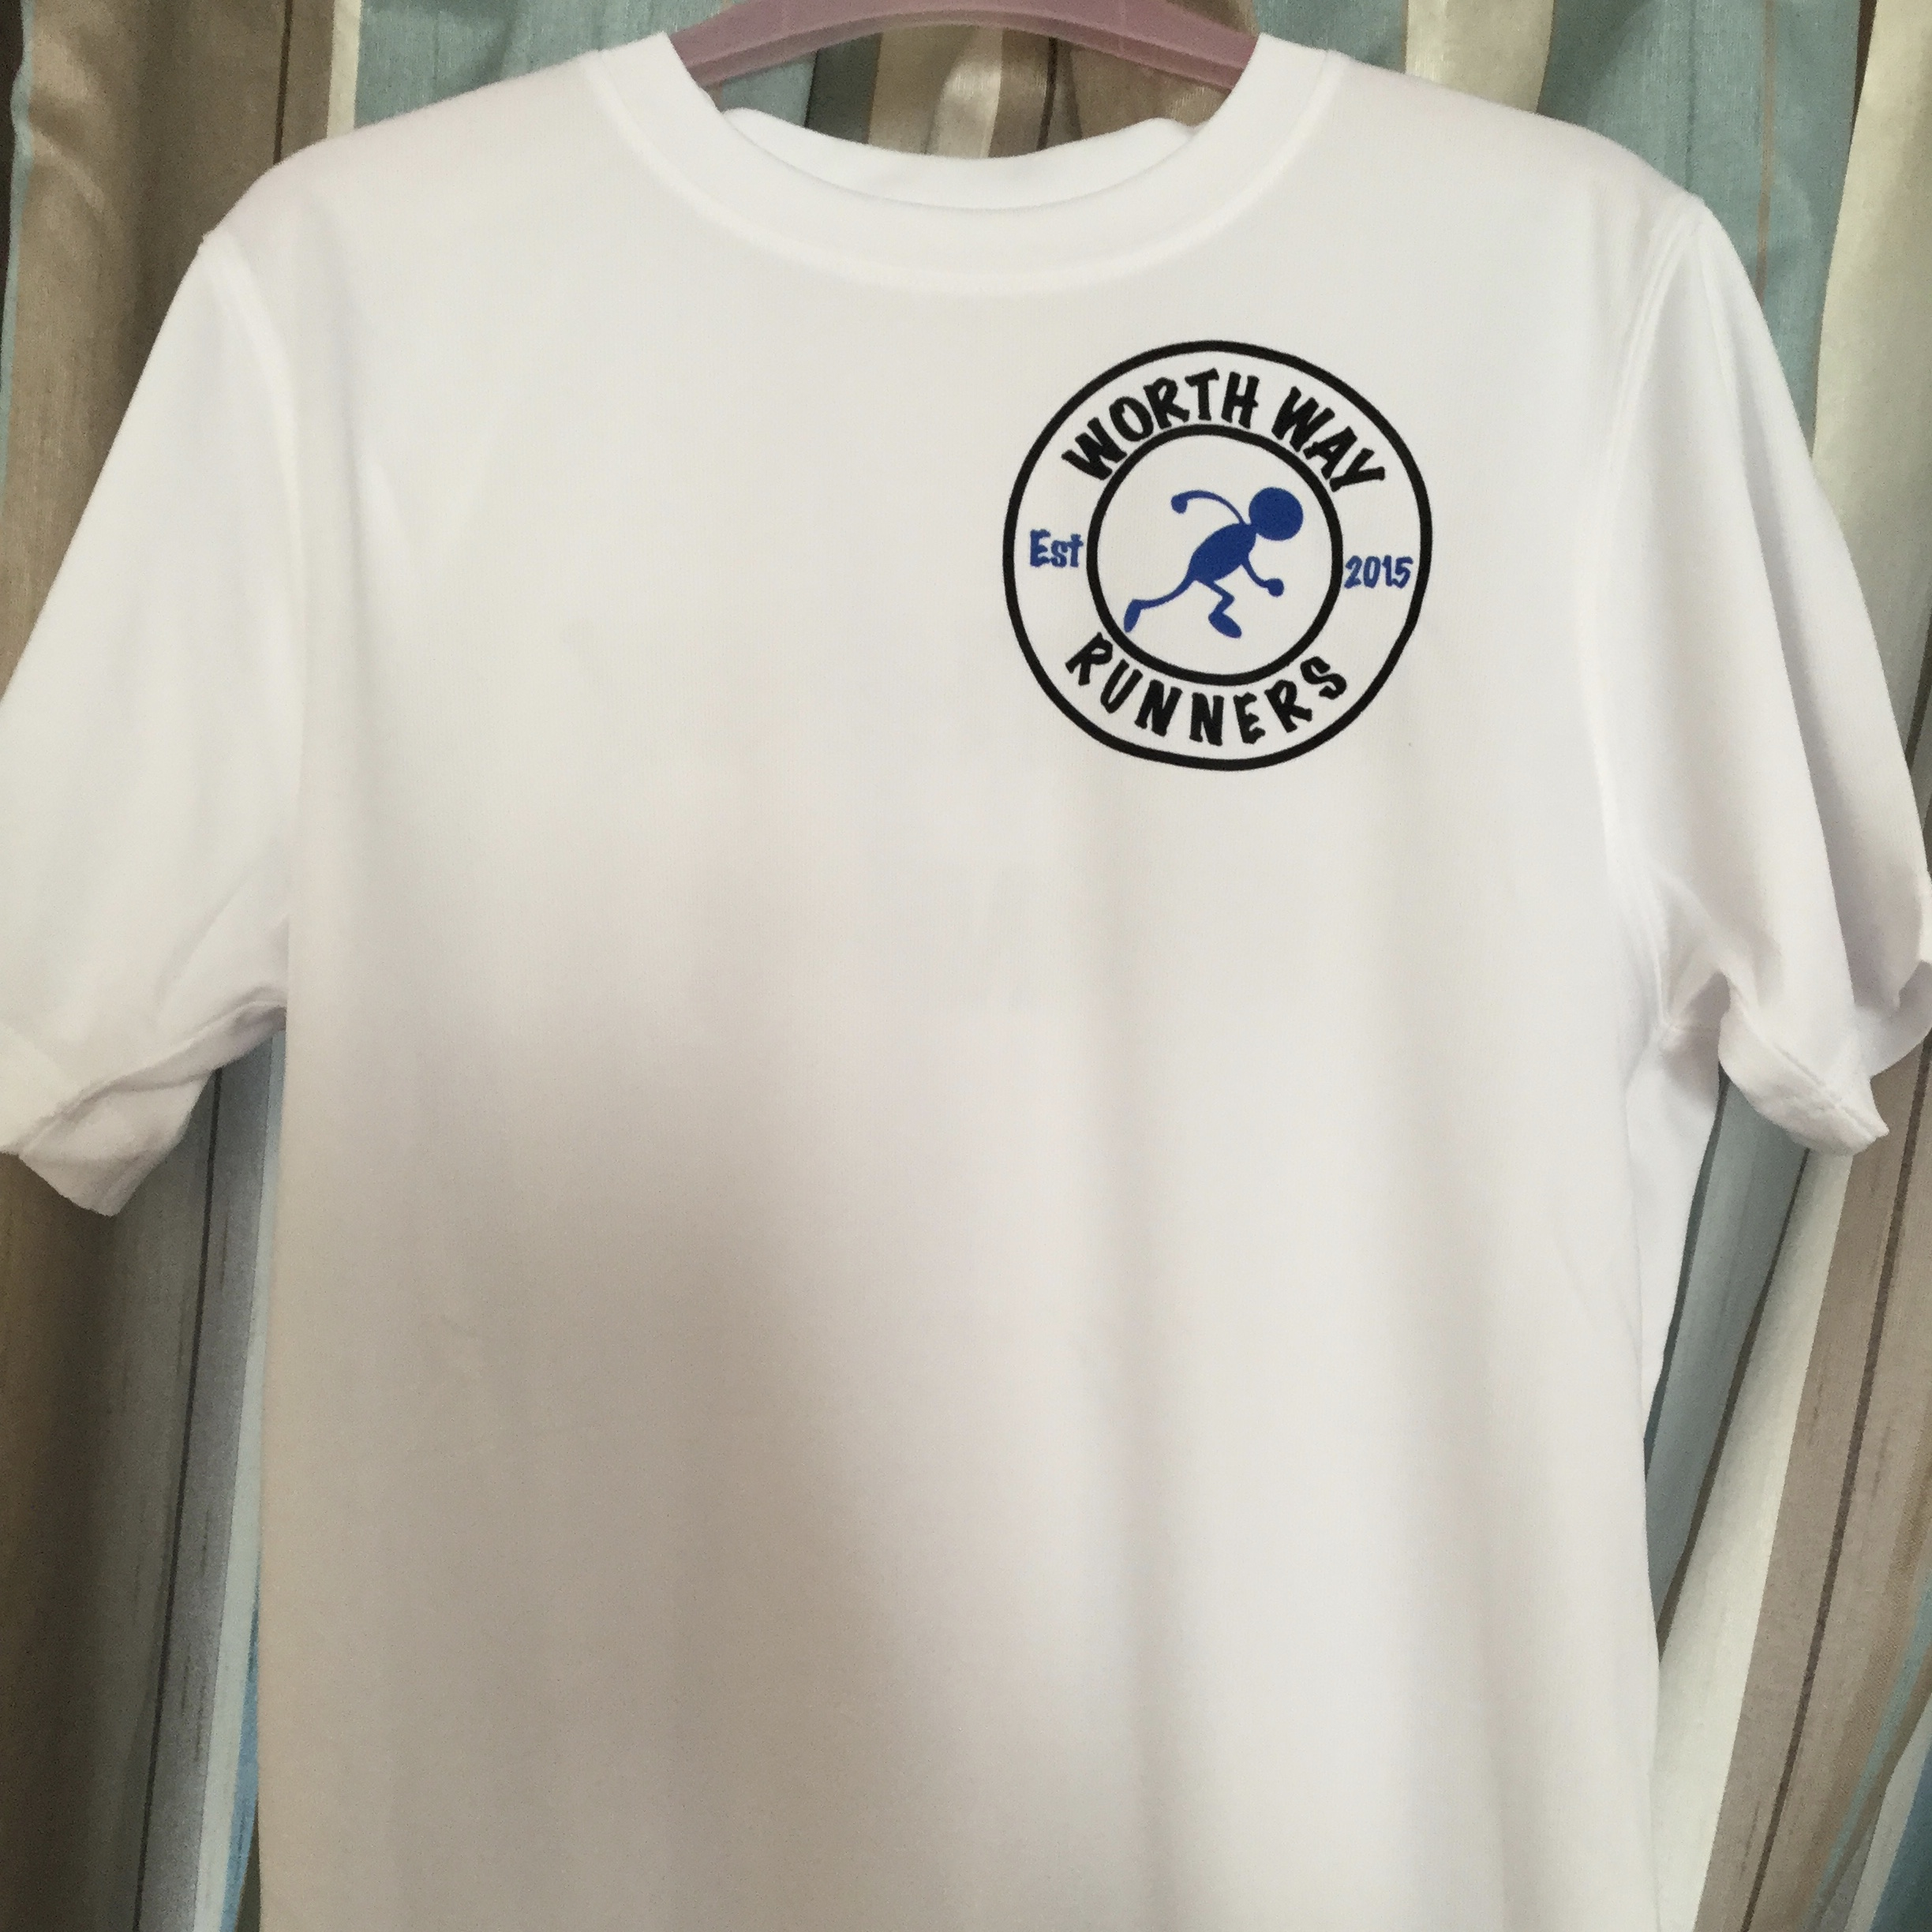 Worth Way Runners - Unisex White Running Shirt